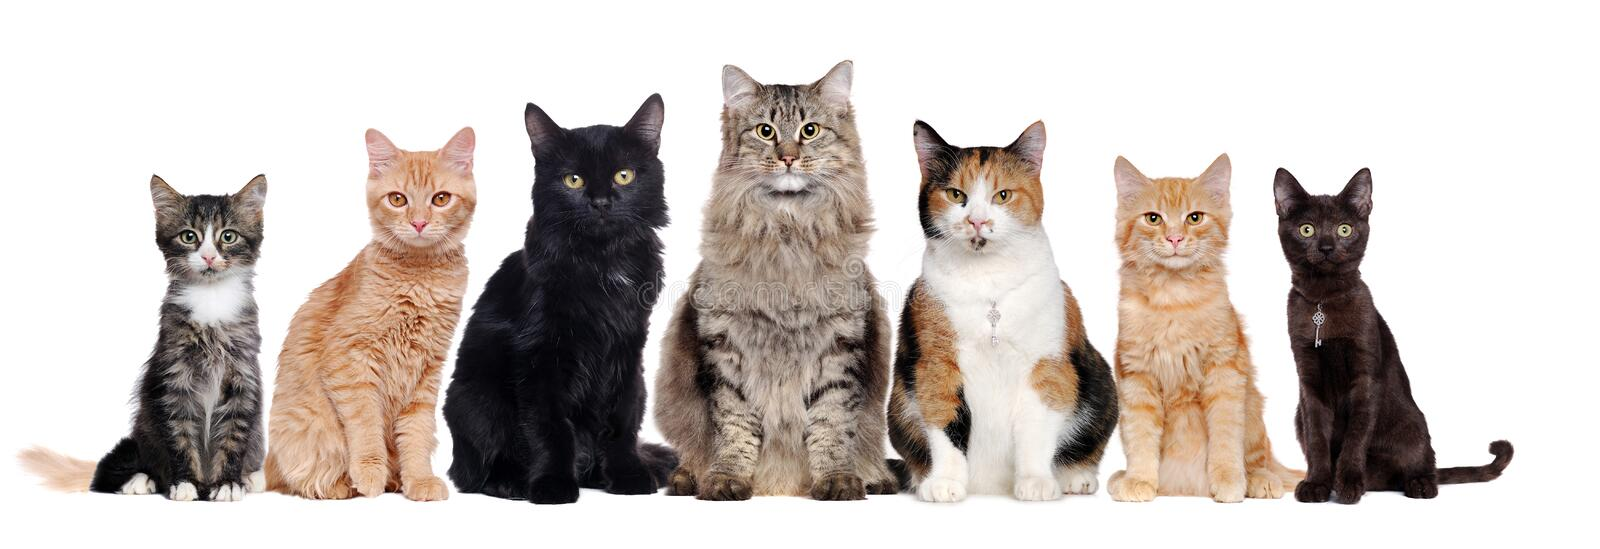 A group of cats of different breeds sitting in a raw royalty free stock image